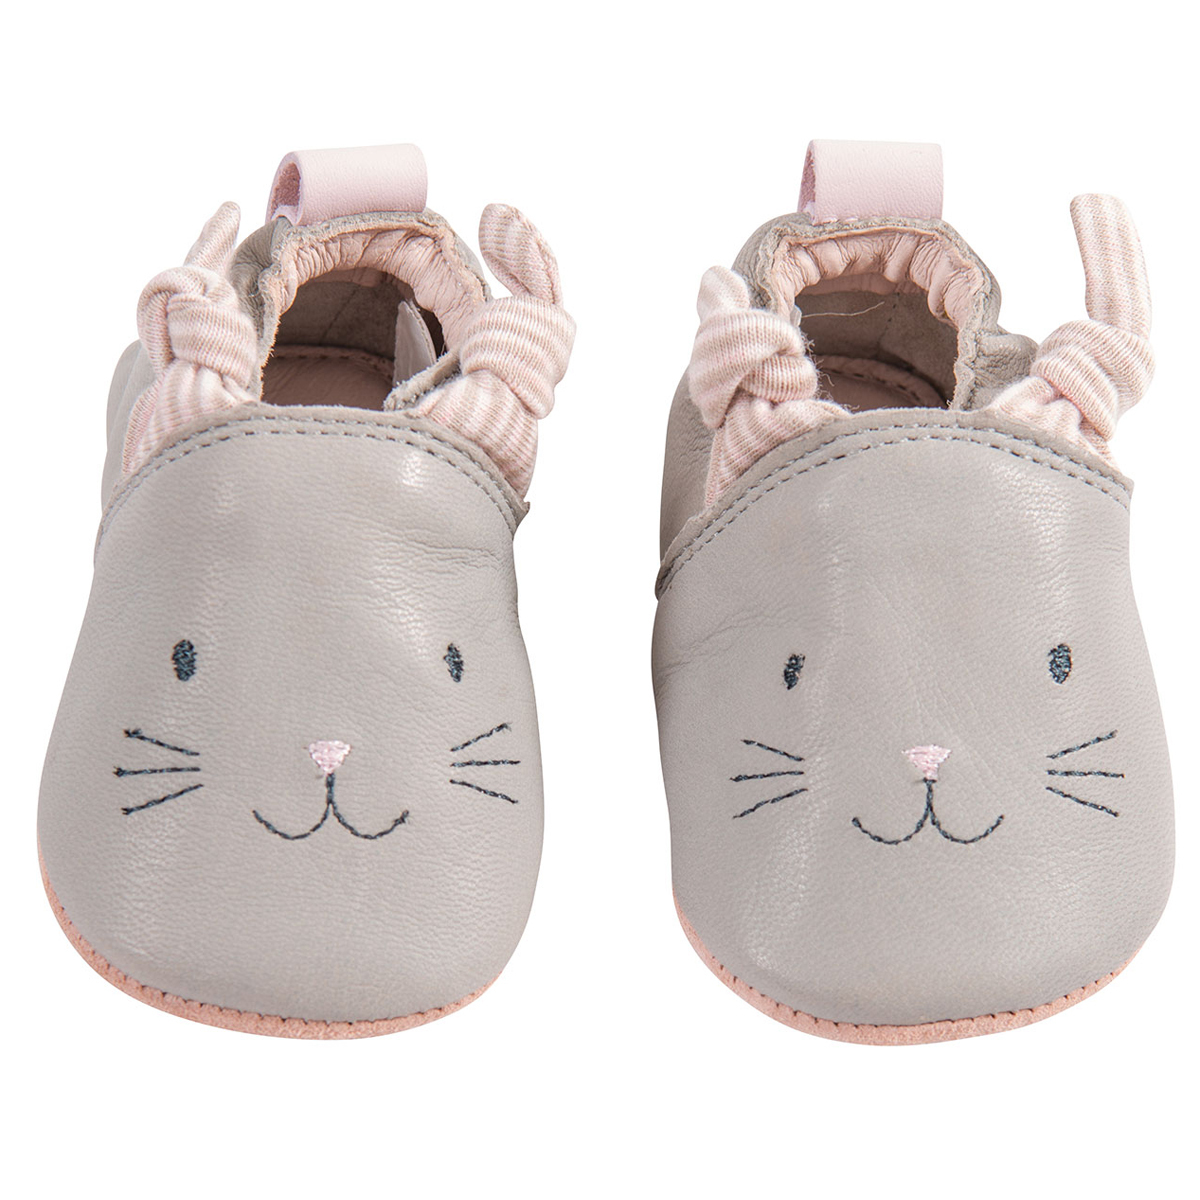 Chaussons & Chaussures Chaussons Cuir Gris Les Petits Dodos - 20/21